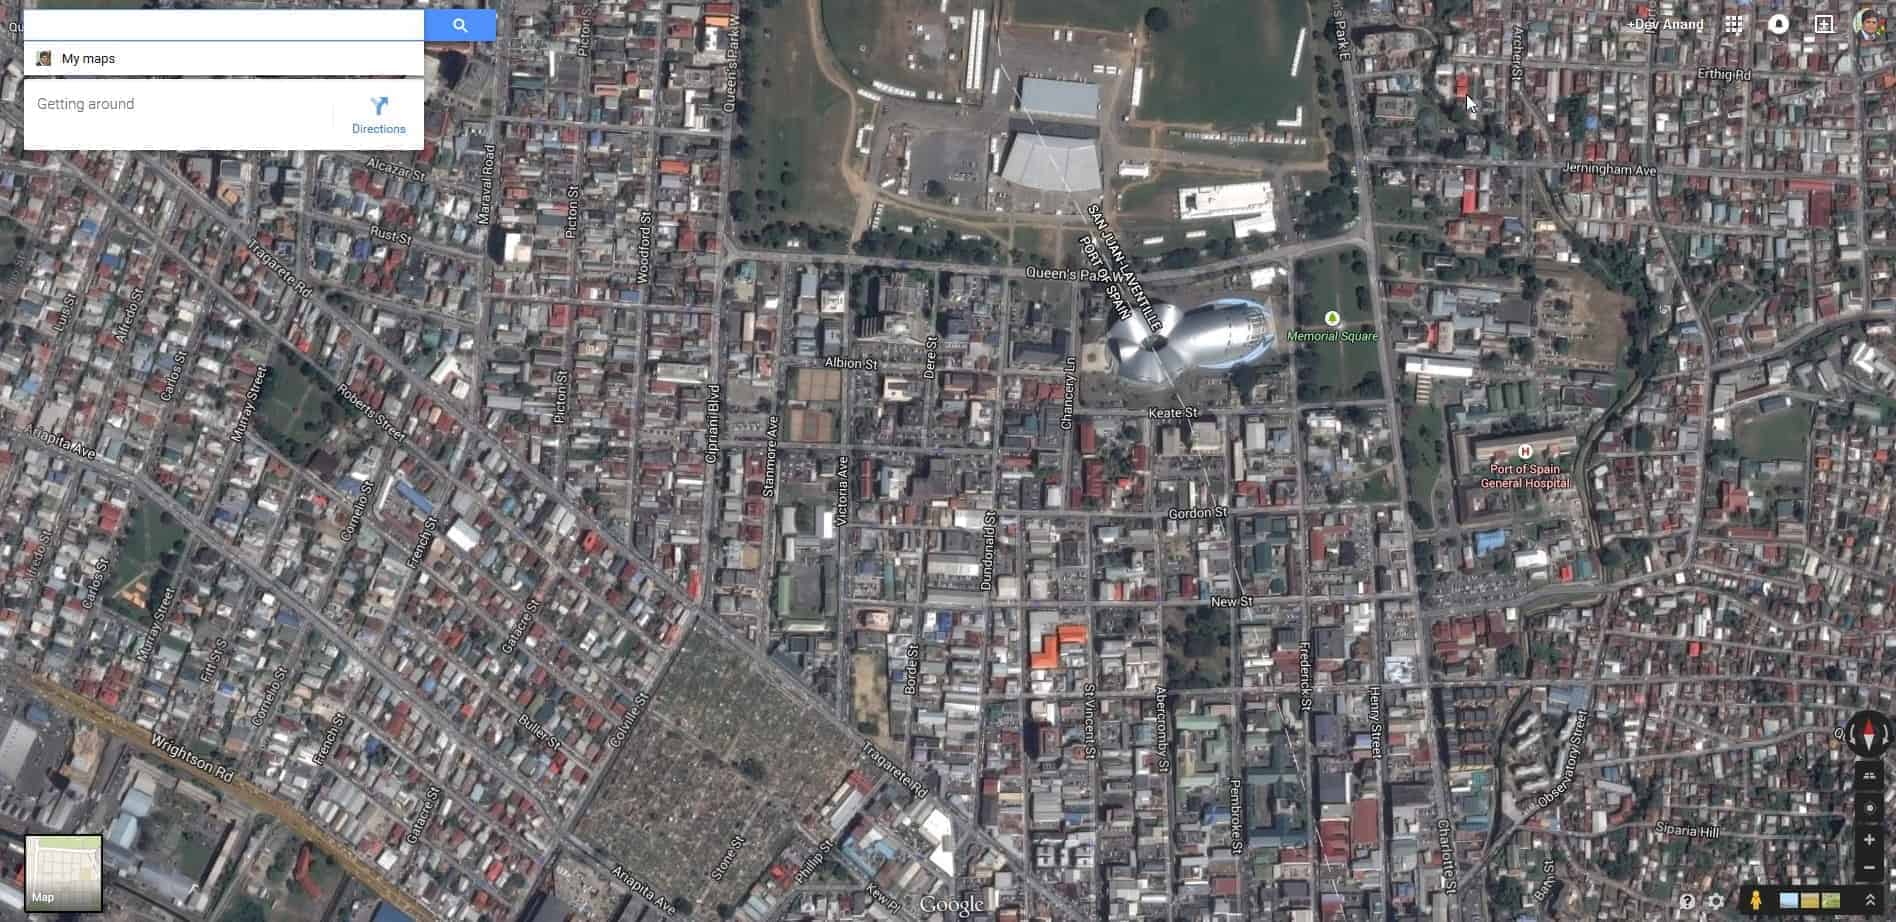 Google updates satellite imagery for Port of Spain, Trinidad in